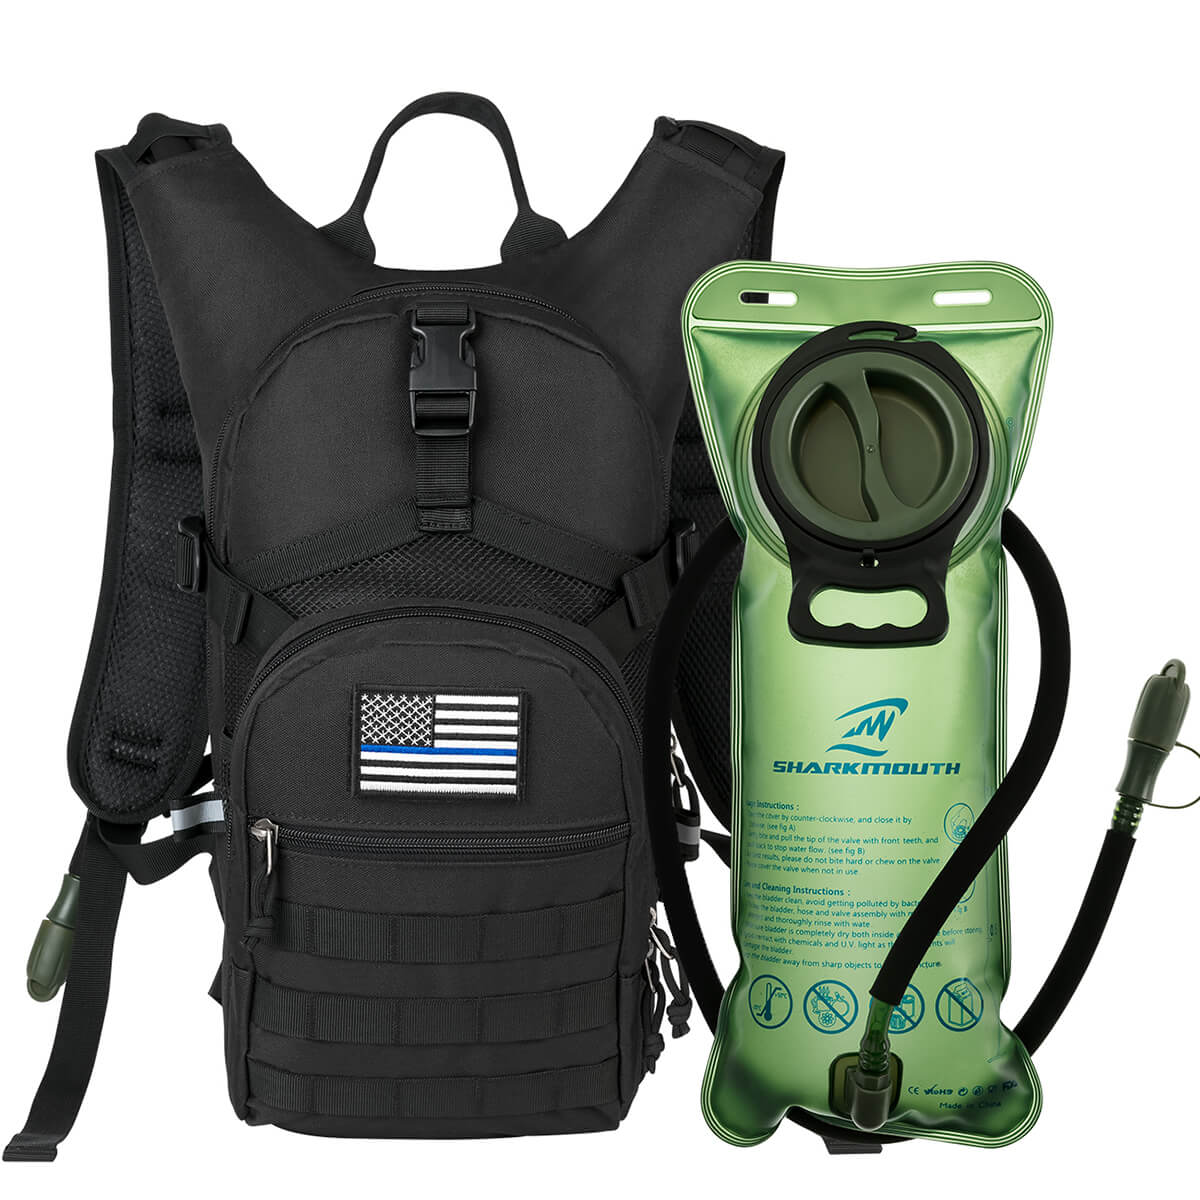 SHARKMOUTH Tactical MOLLE Hydration Pack Backpack 900D with 2L Leak-Proof  Water Bladder, Keep Liquids Cool for Up to 4 Hours, Daypack for Hiking,